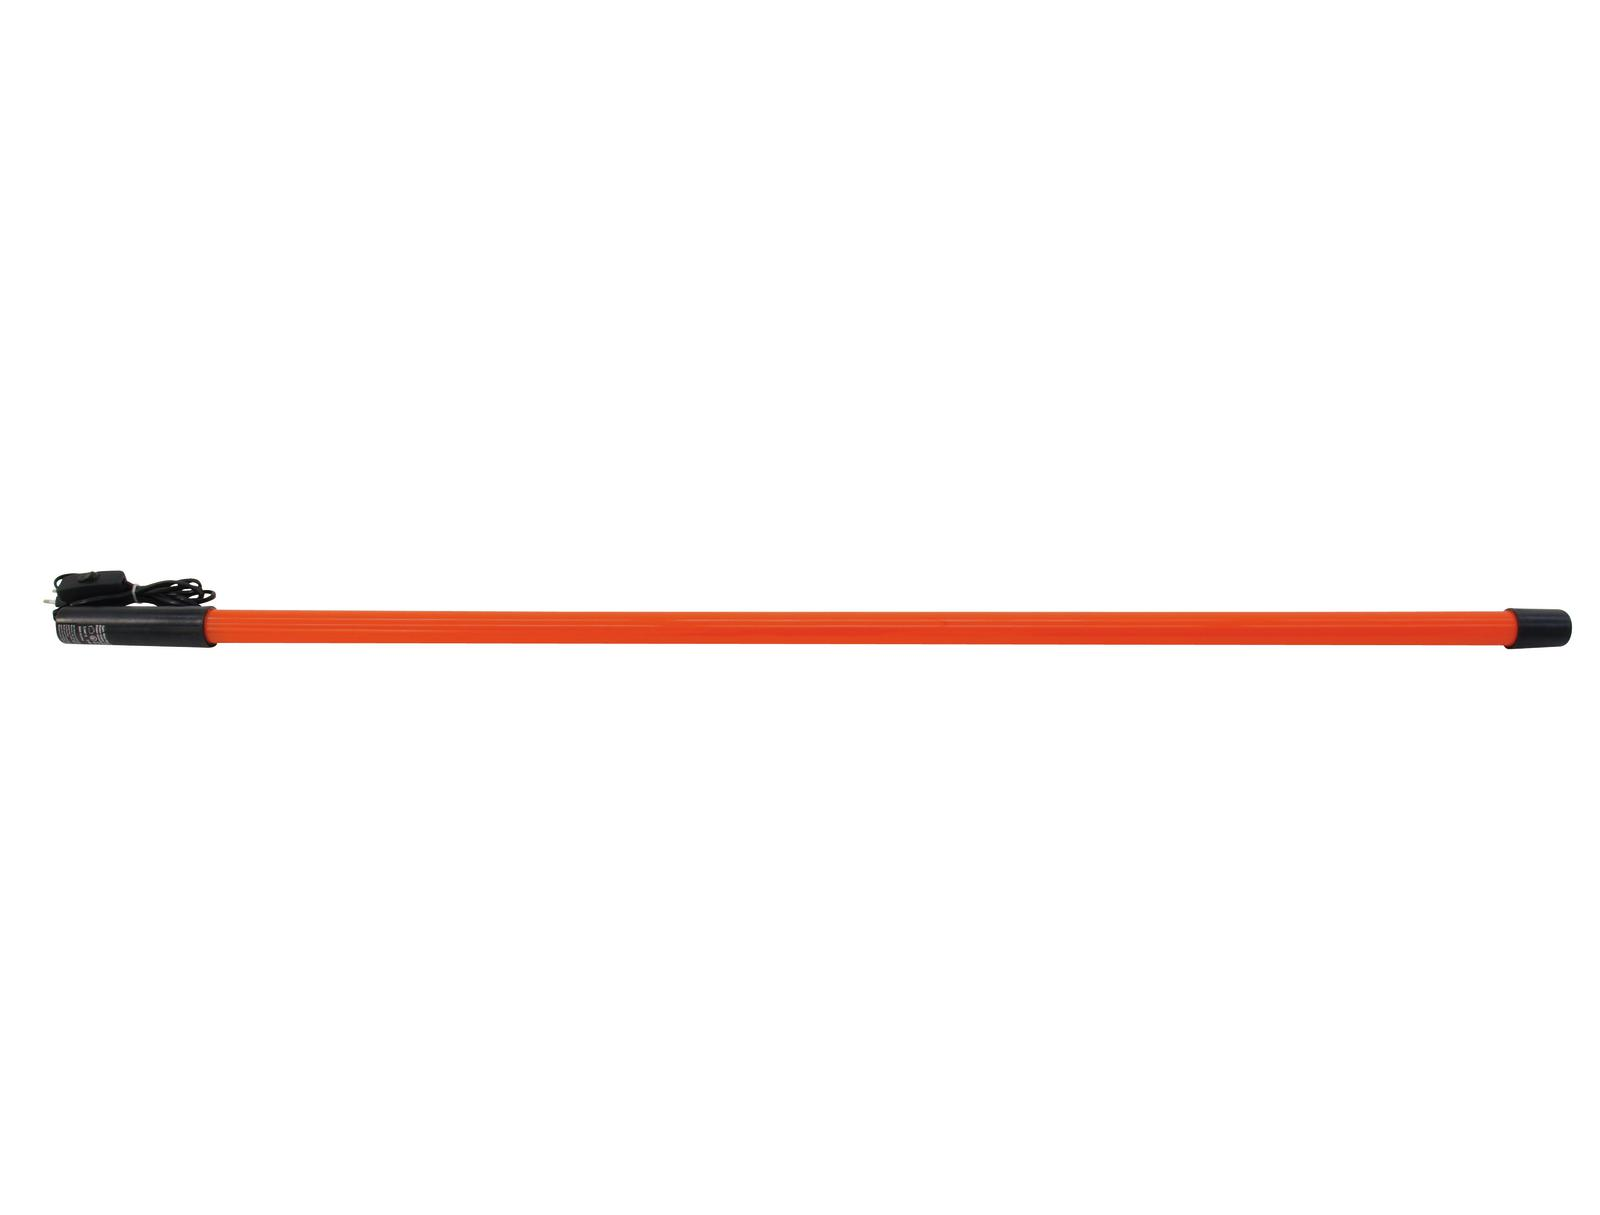 EUROLITE Neon stick Light Tube T8 36W 134cm orange orange L